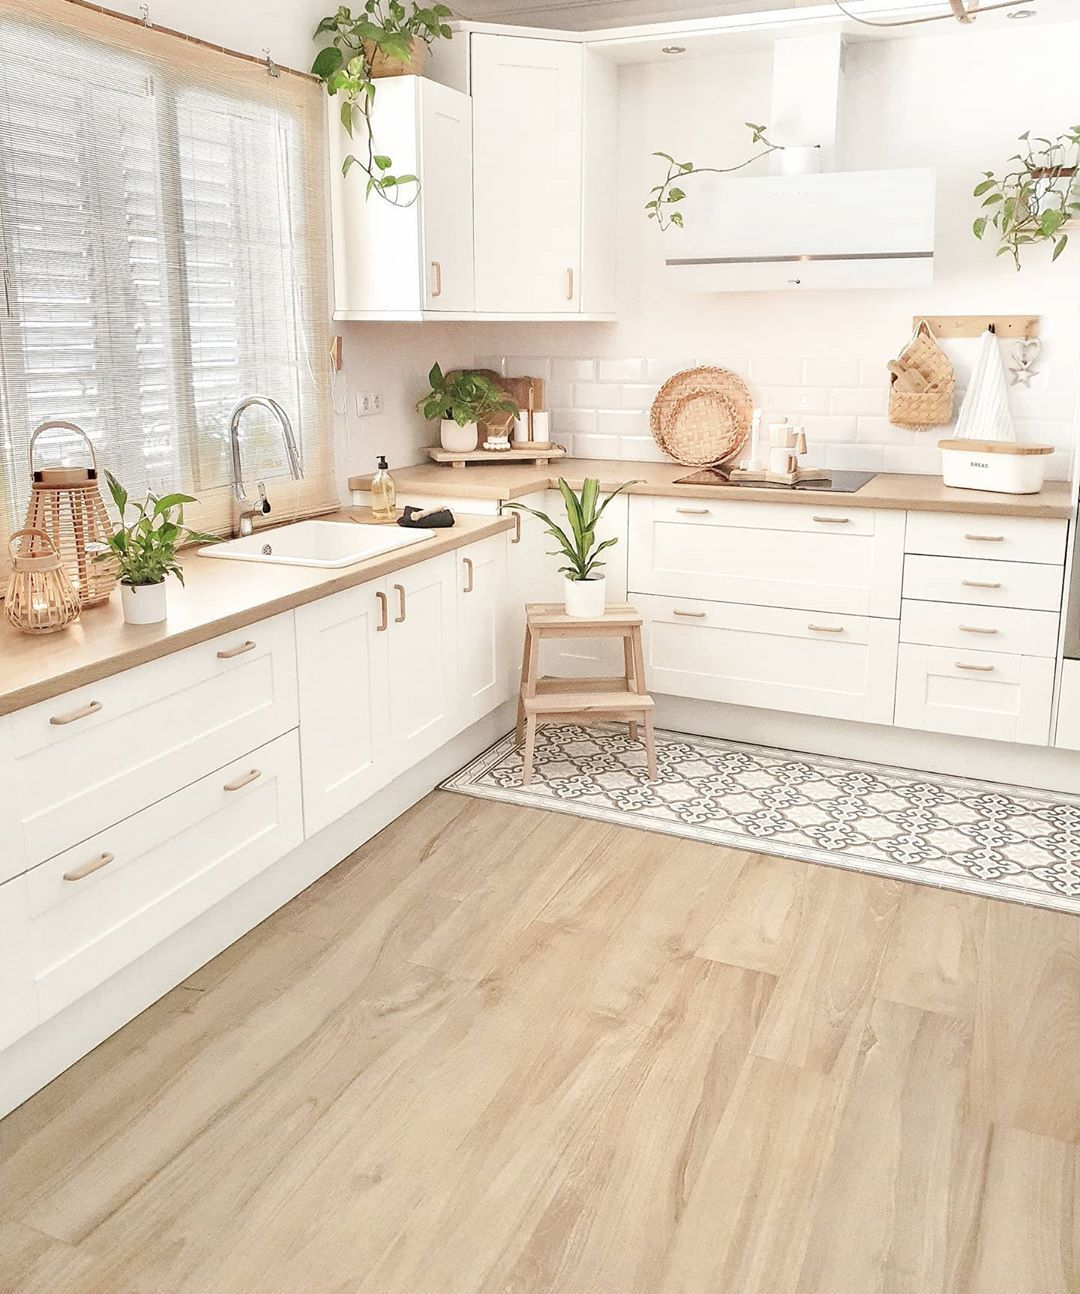 A simple and consistent kitchen @sandradeco__sweet_home 😍😍😍. Love how she uses plants to freshen up the space! Click the image to try our free home design app.  (Keywords: bright kitchen, interior design, cabinet colors, dream home, room ideas, DIY home decor, kitchen remodel, kitchen decor, kitchen ideas, kitchen wall, kitchen organization, kitchen island ideas, positive vibes, positive thoughts, relaxing home decor)